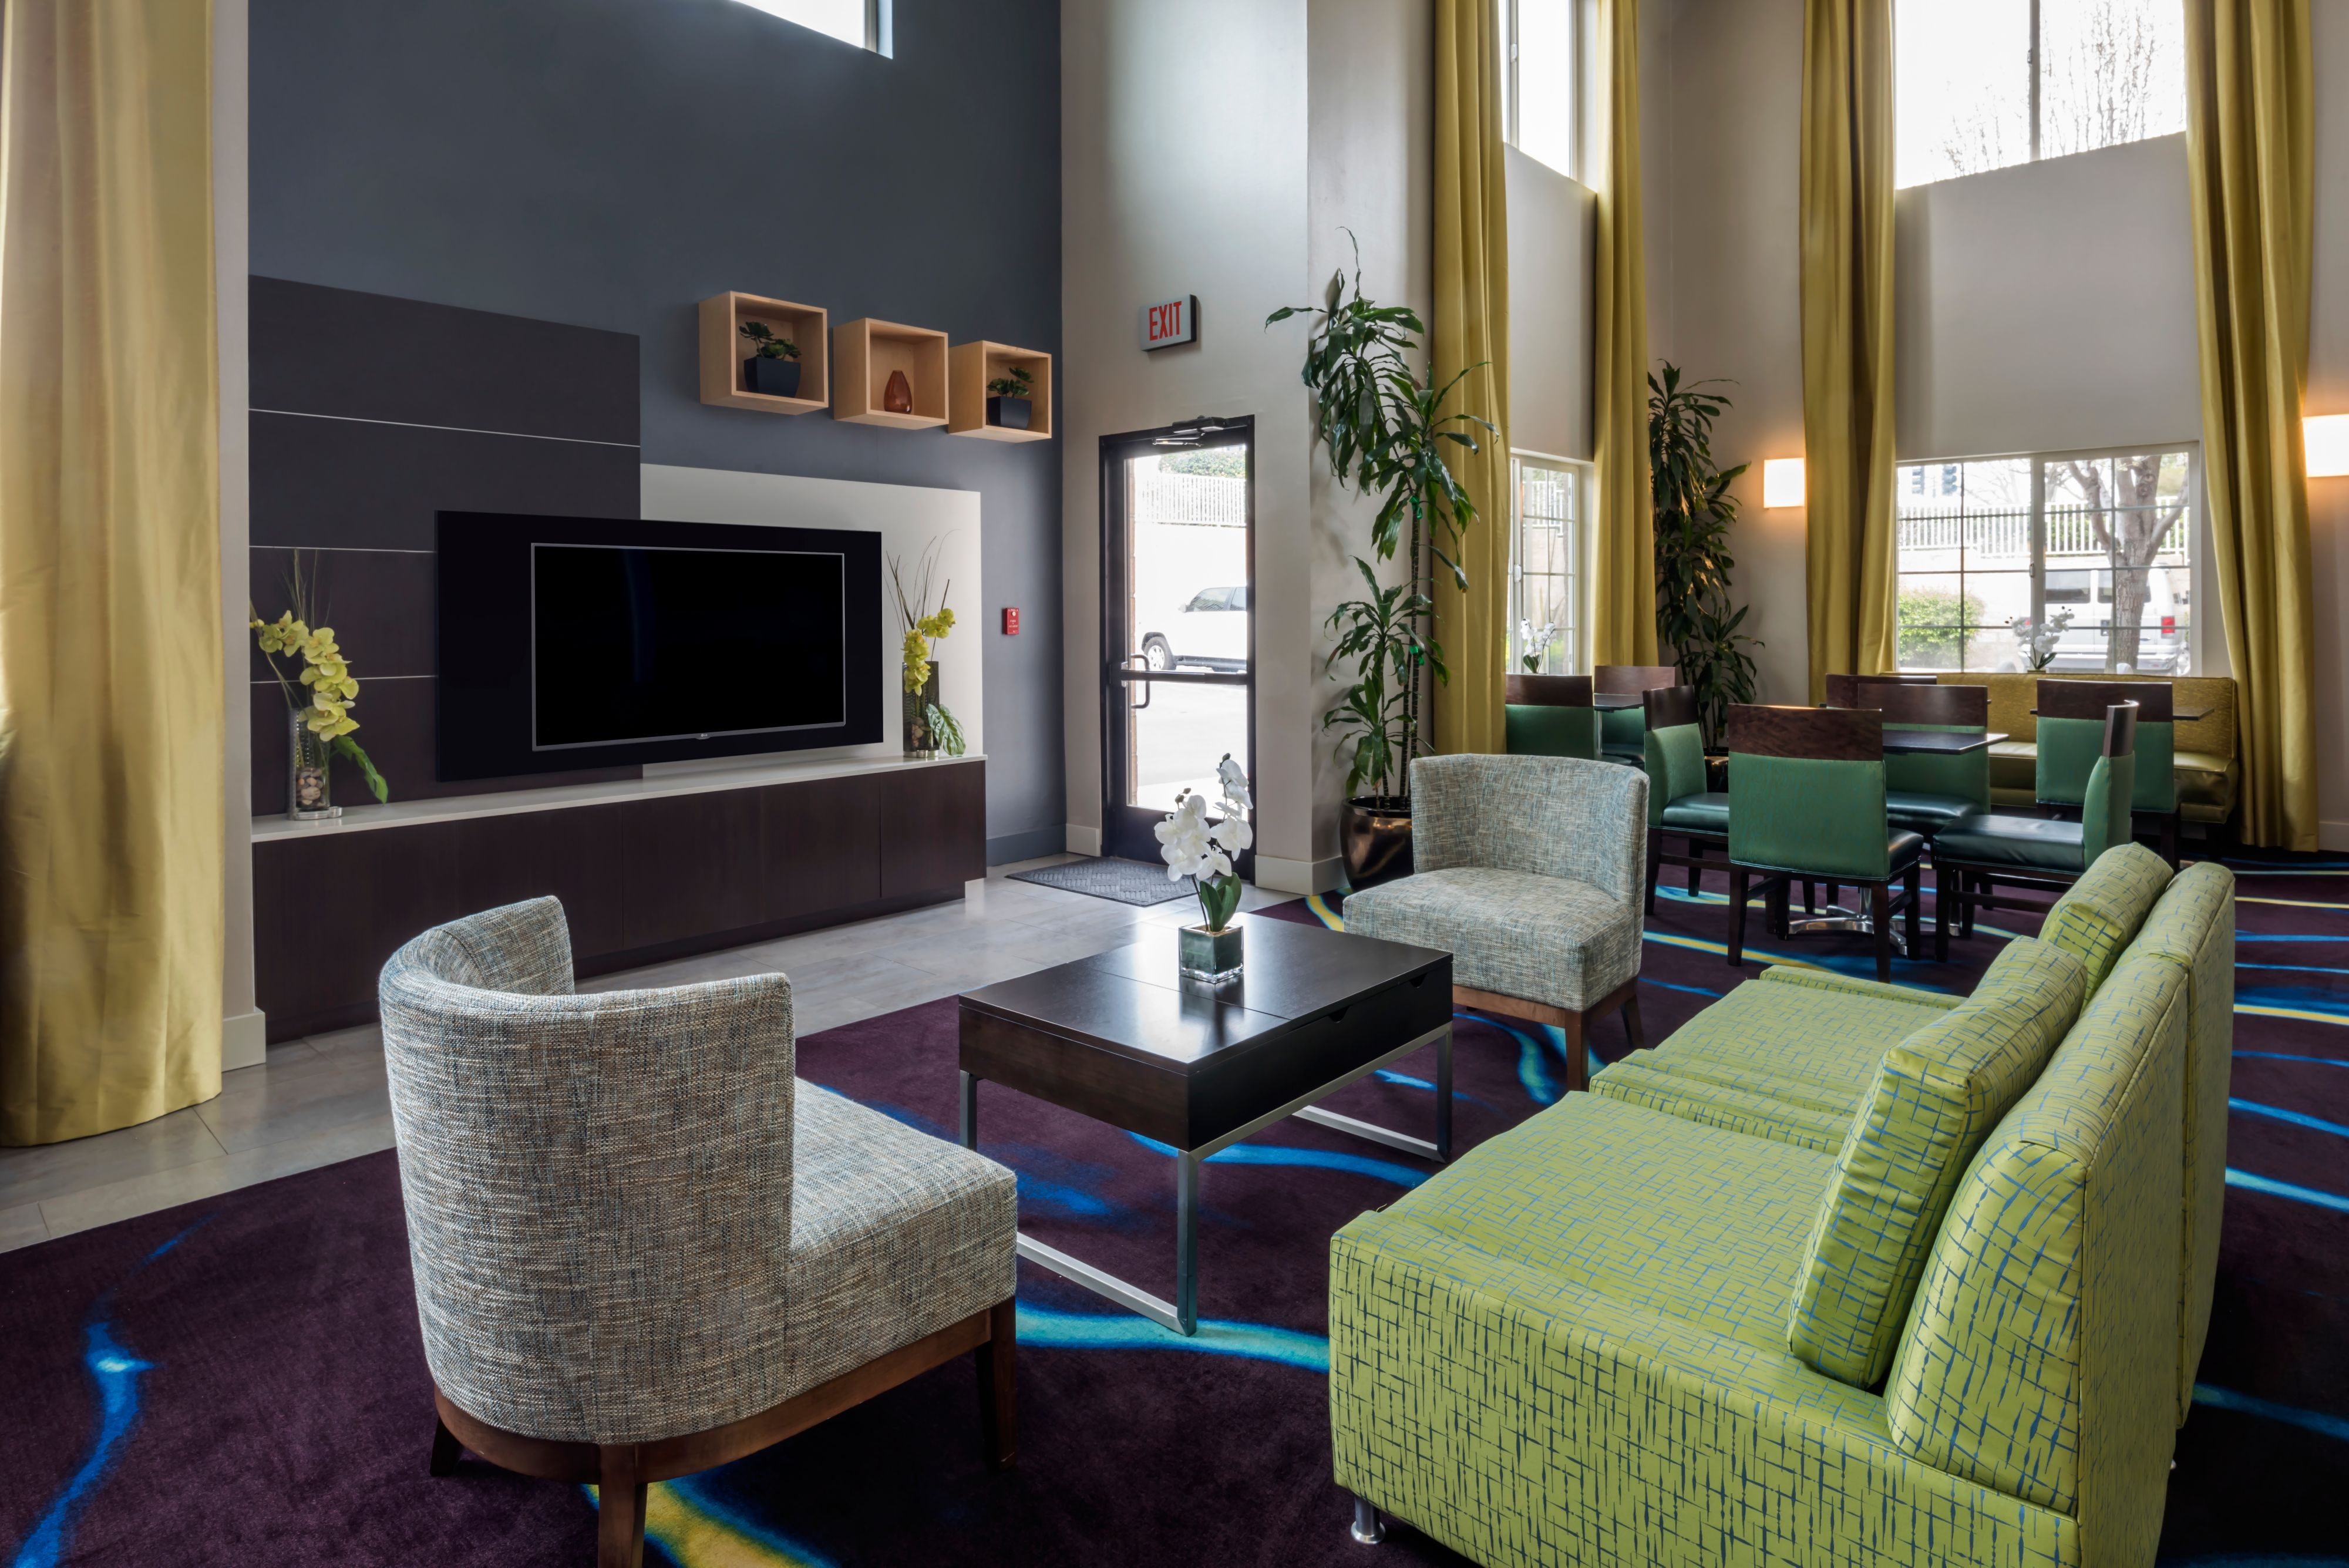 Holiday Inn Express & Suites Livermore image 7